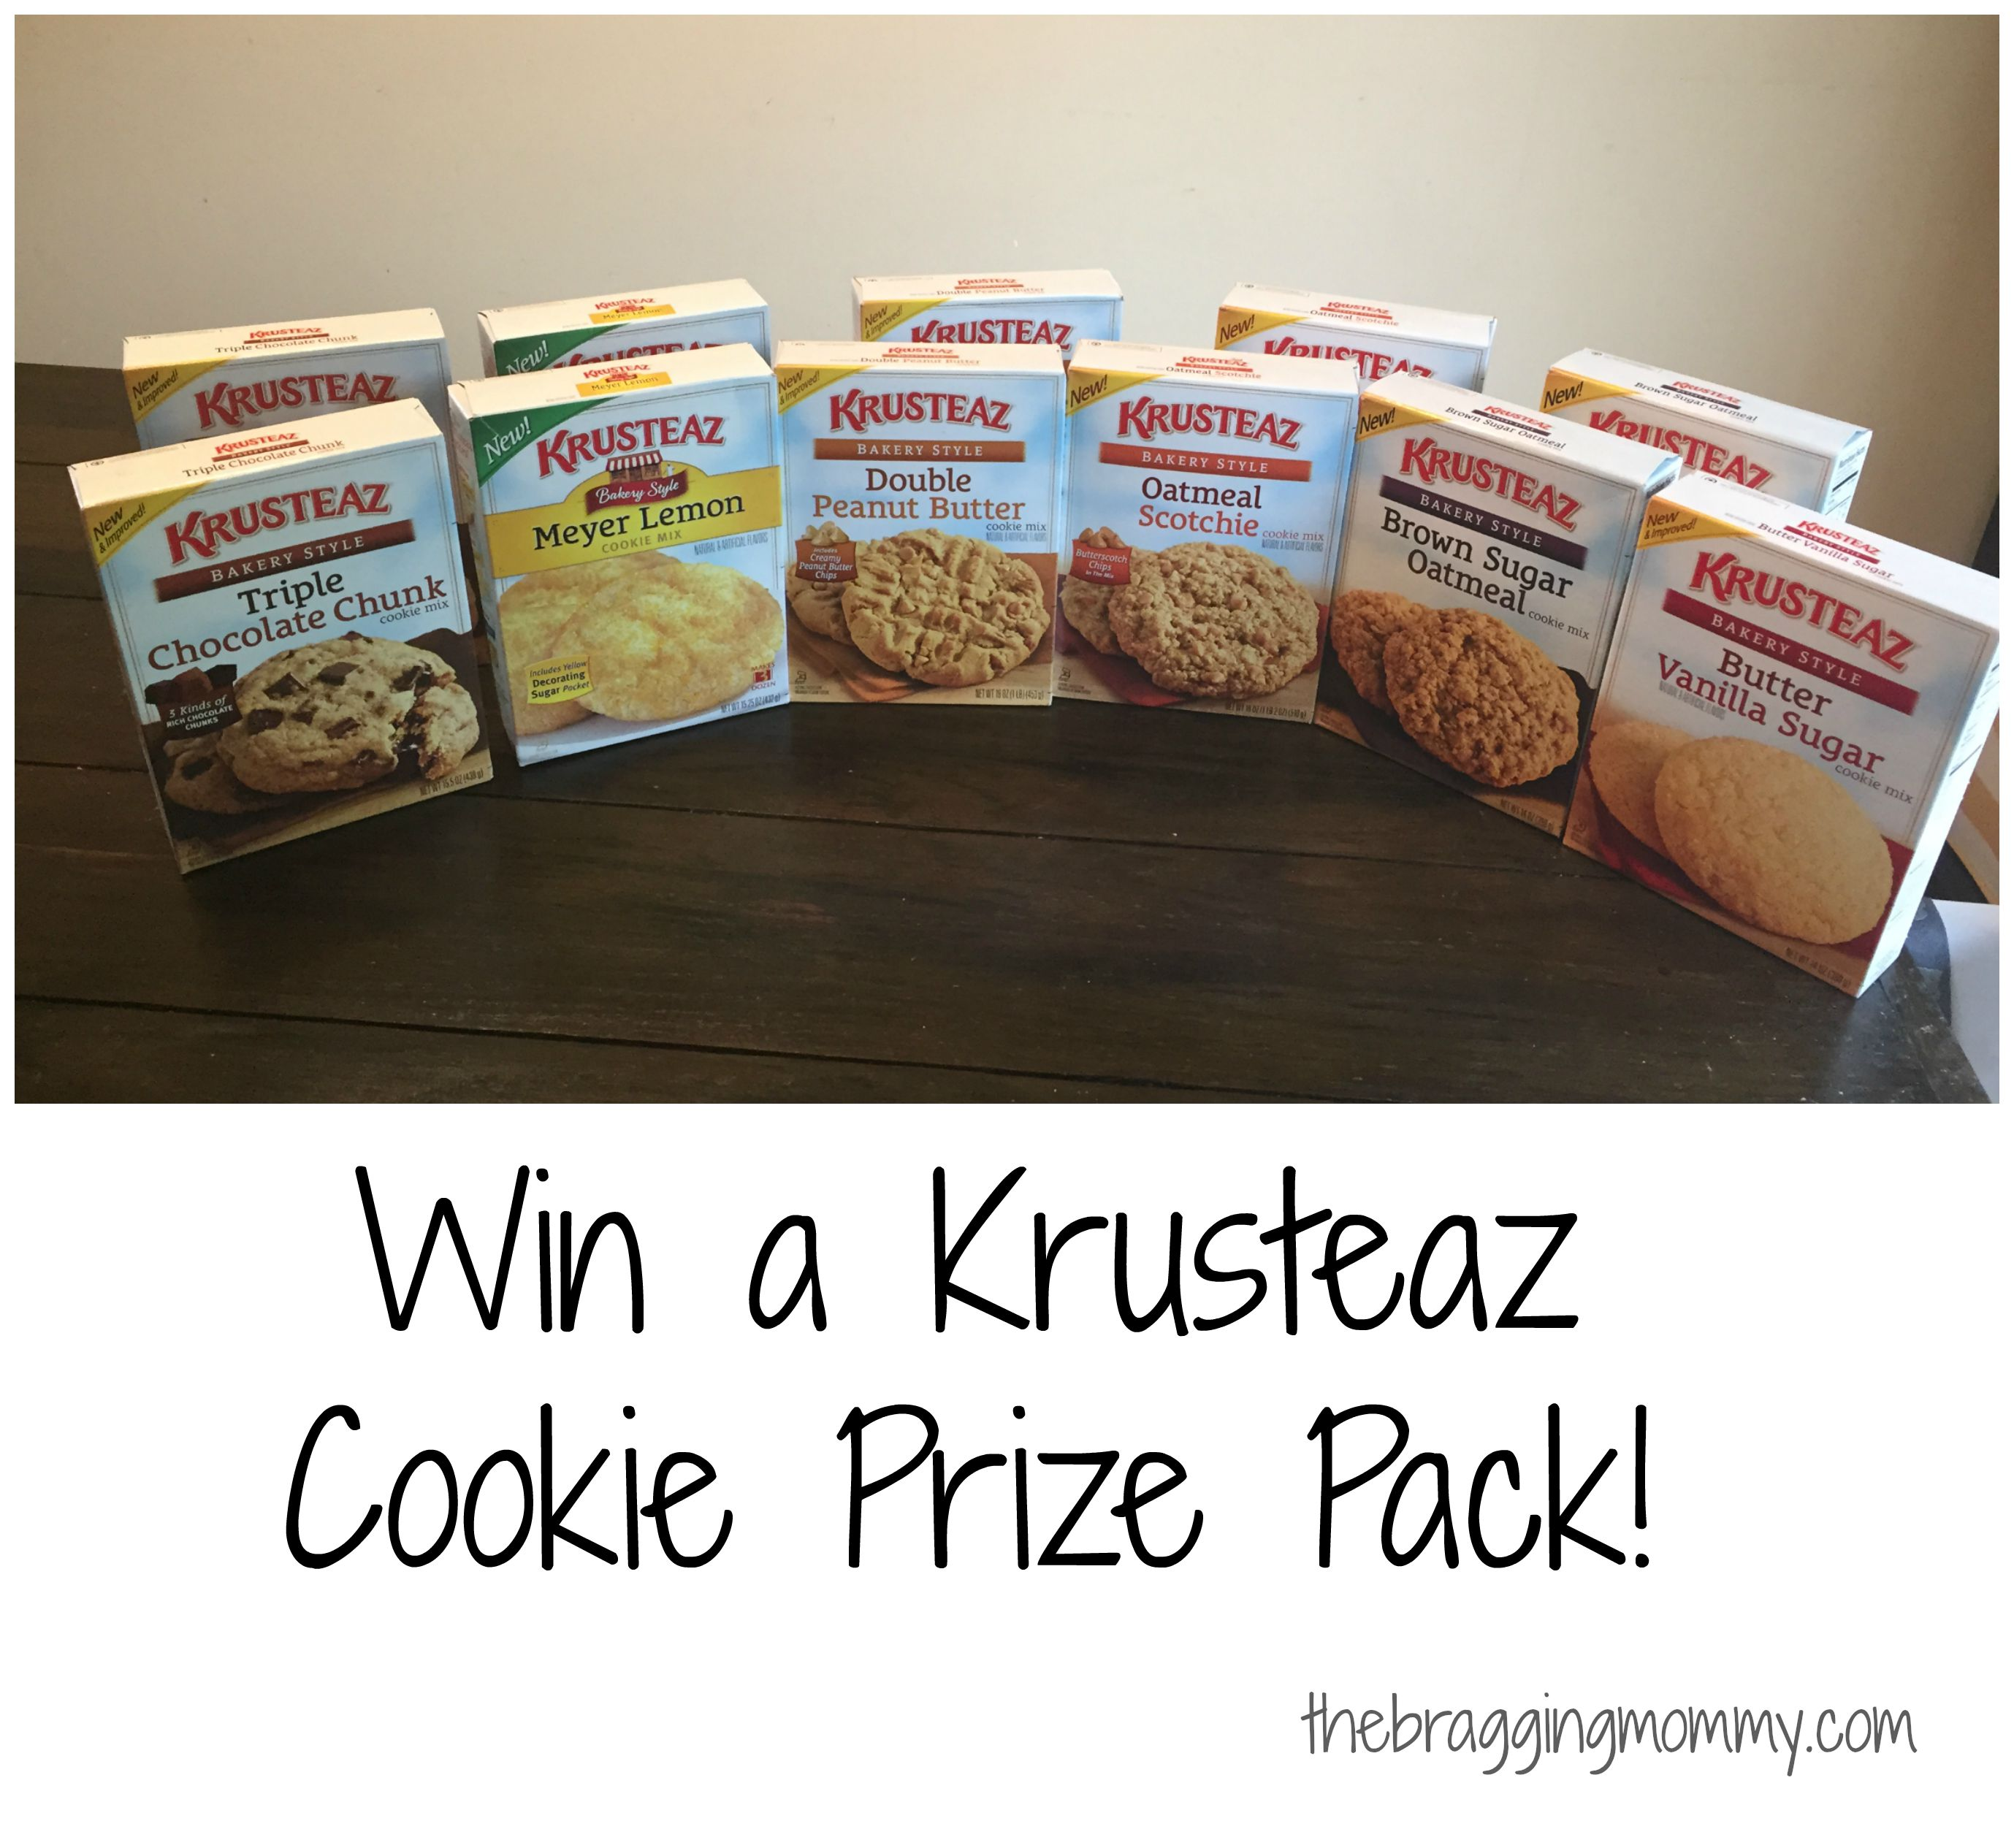 Krusteaz Delicious Boxed Cookie Mixes Review and Prize Pack Giveaway!